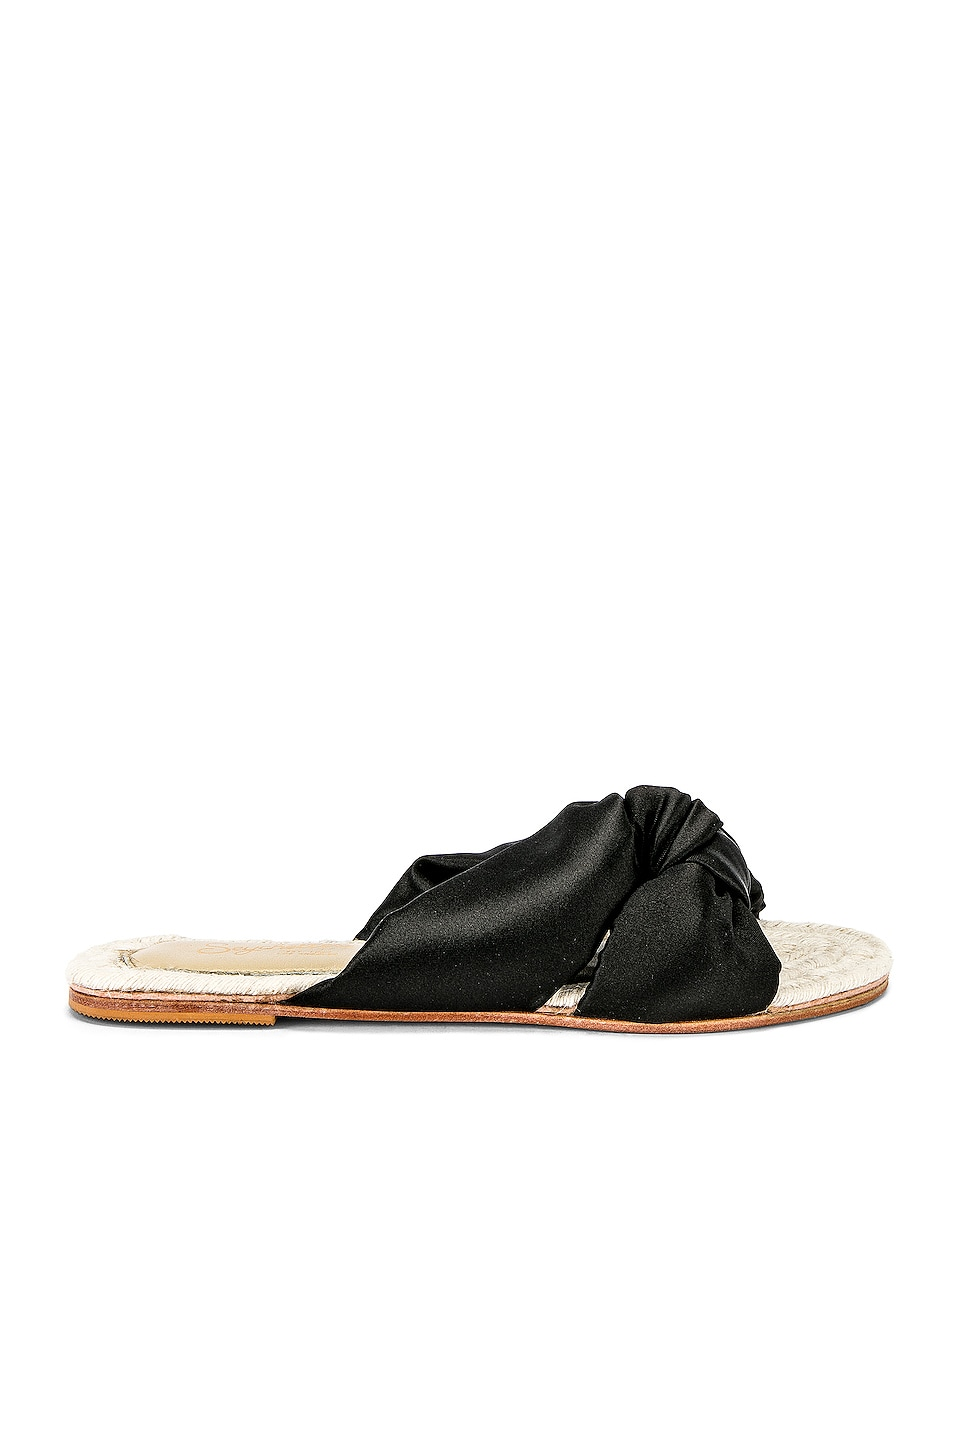 Seychelles Conversation Piece Slide in Black Satin